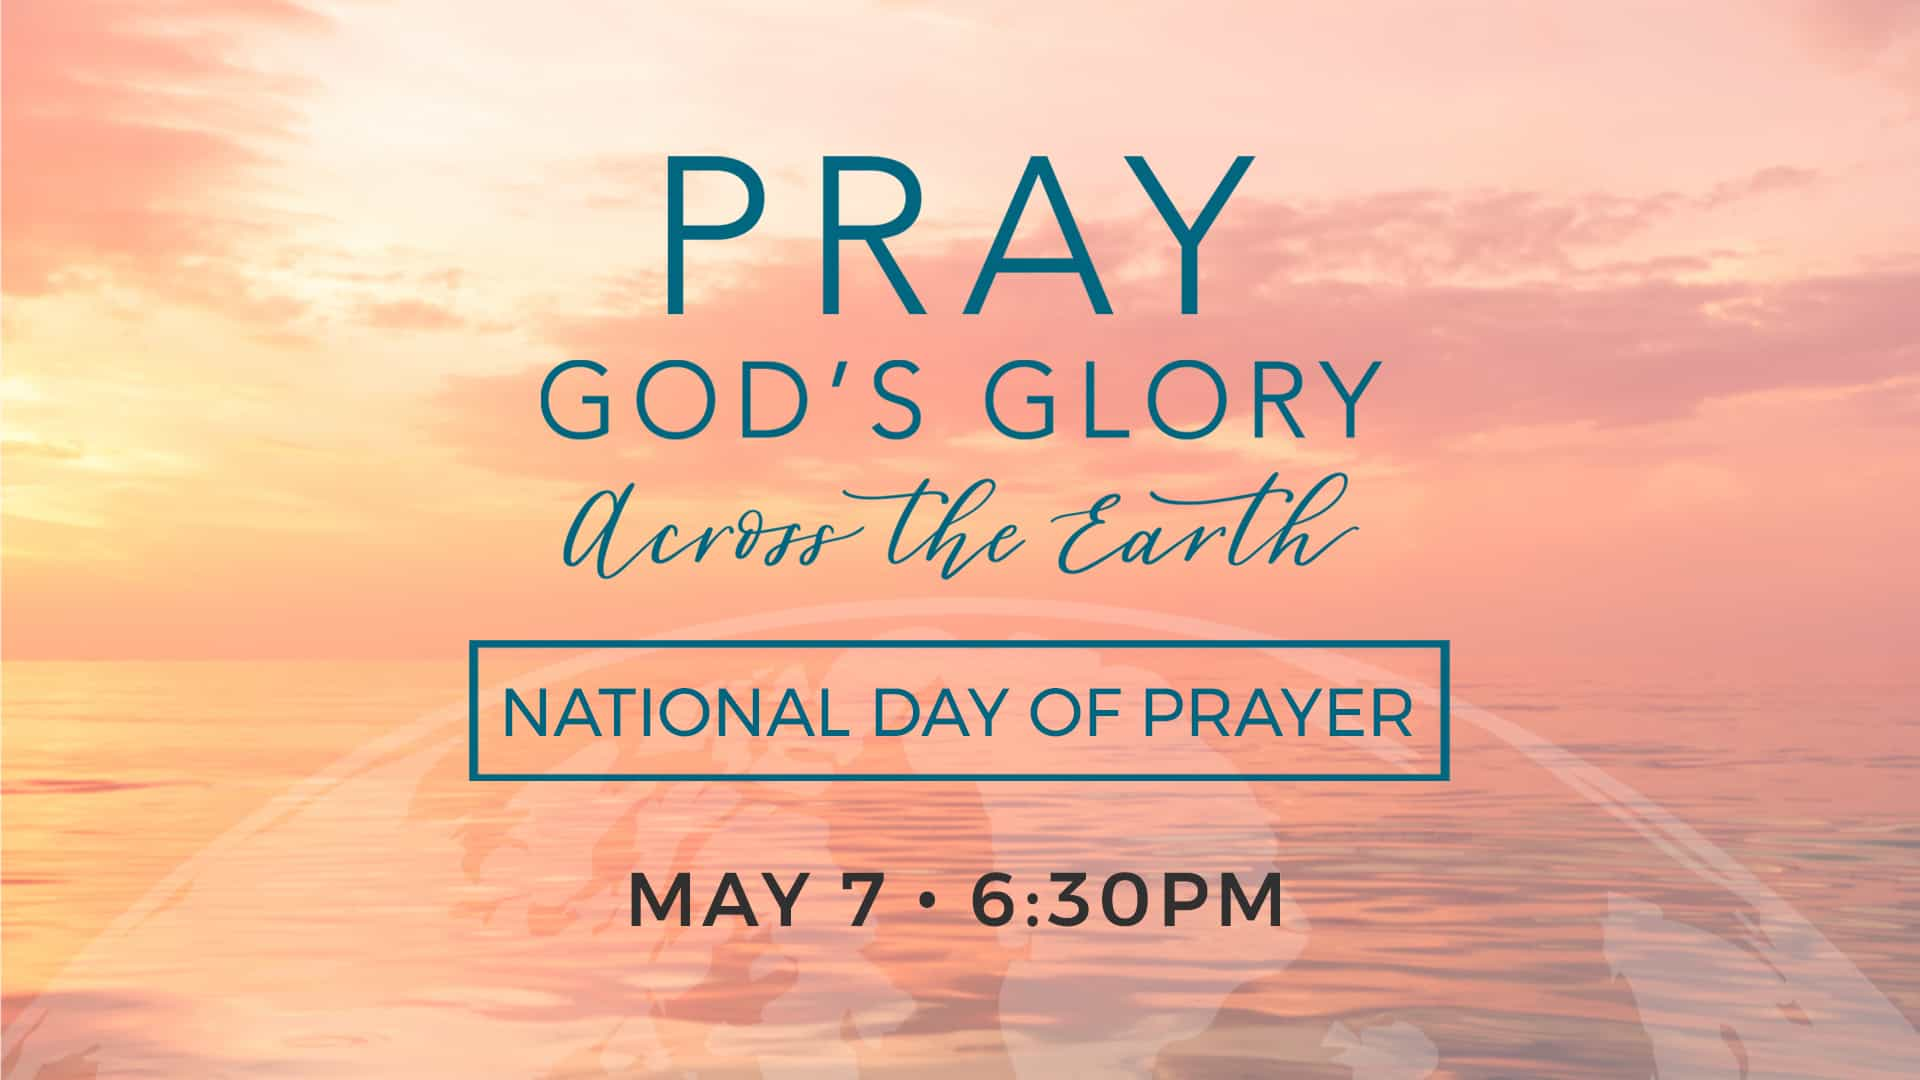 Pray God's Glory across the Earth. May 7th at 6:60pm